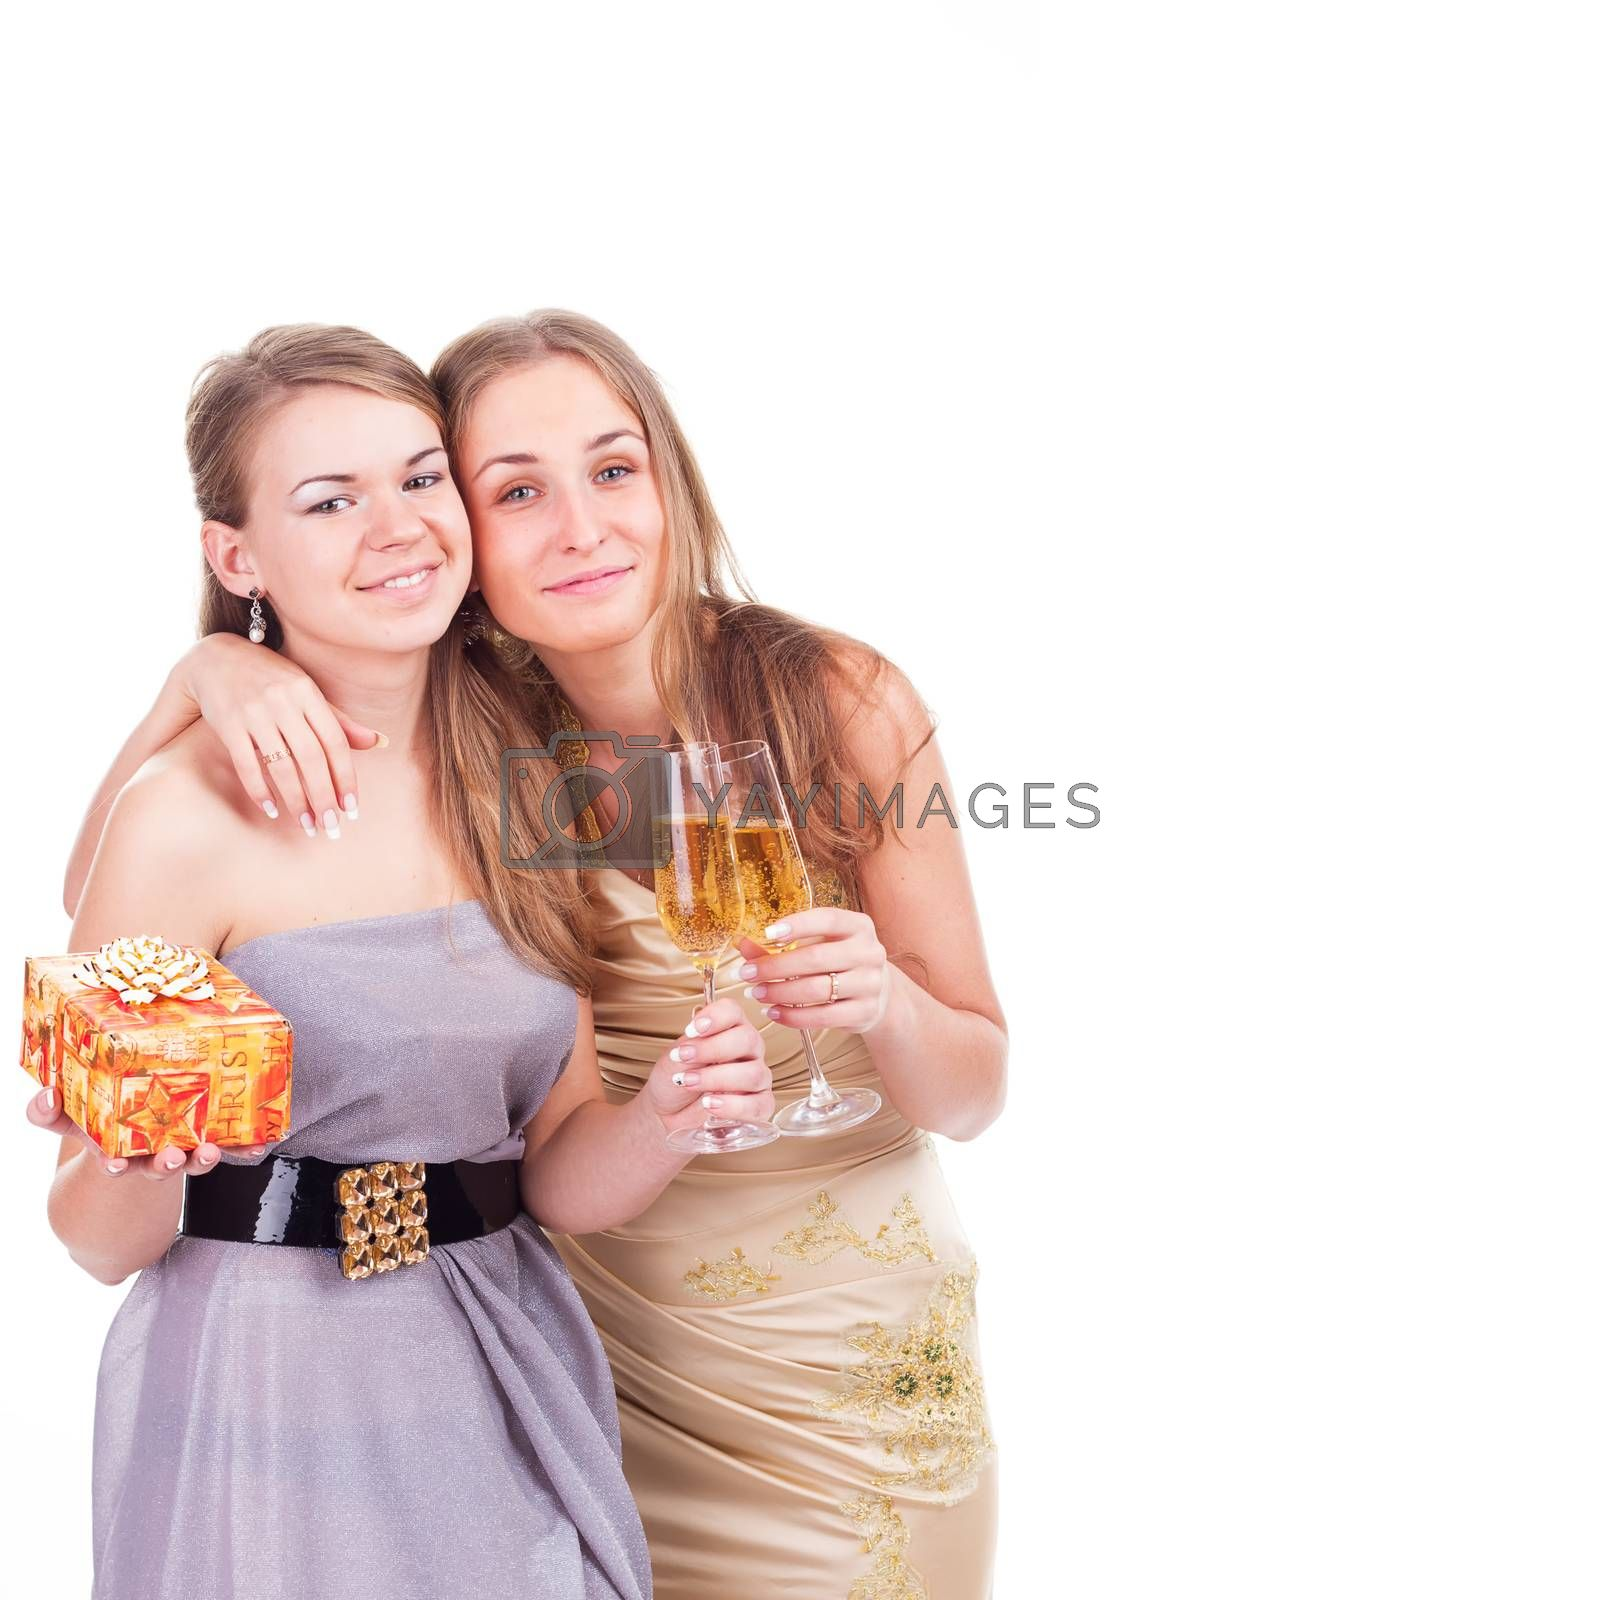 Two young beautiful blonde women celebrating birthday or christmas